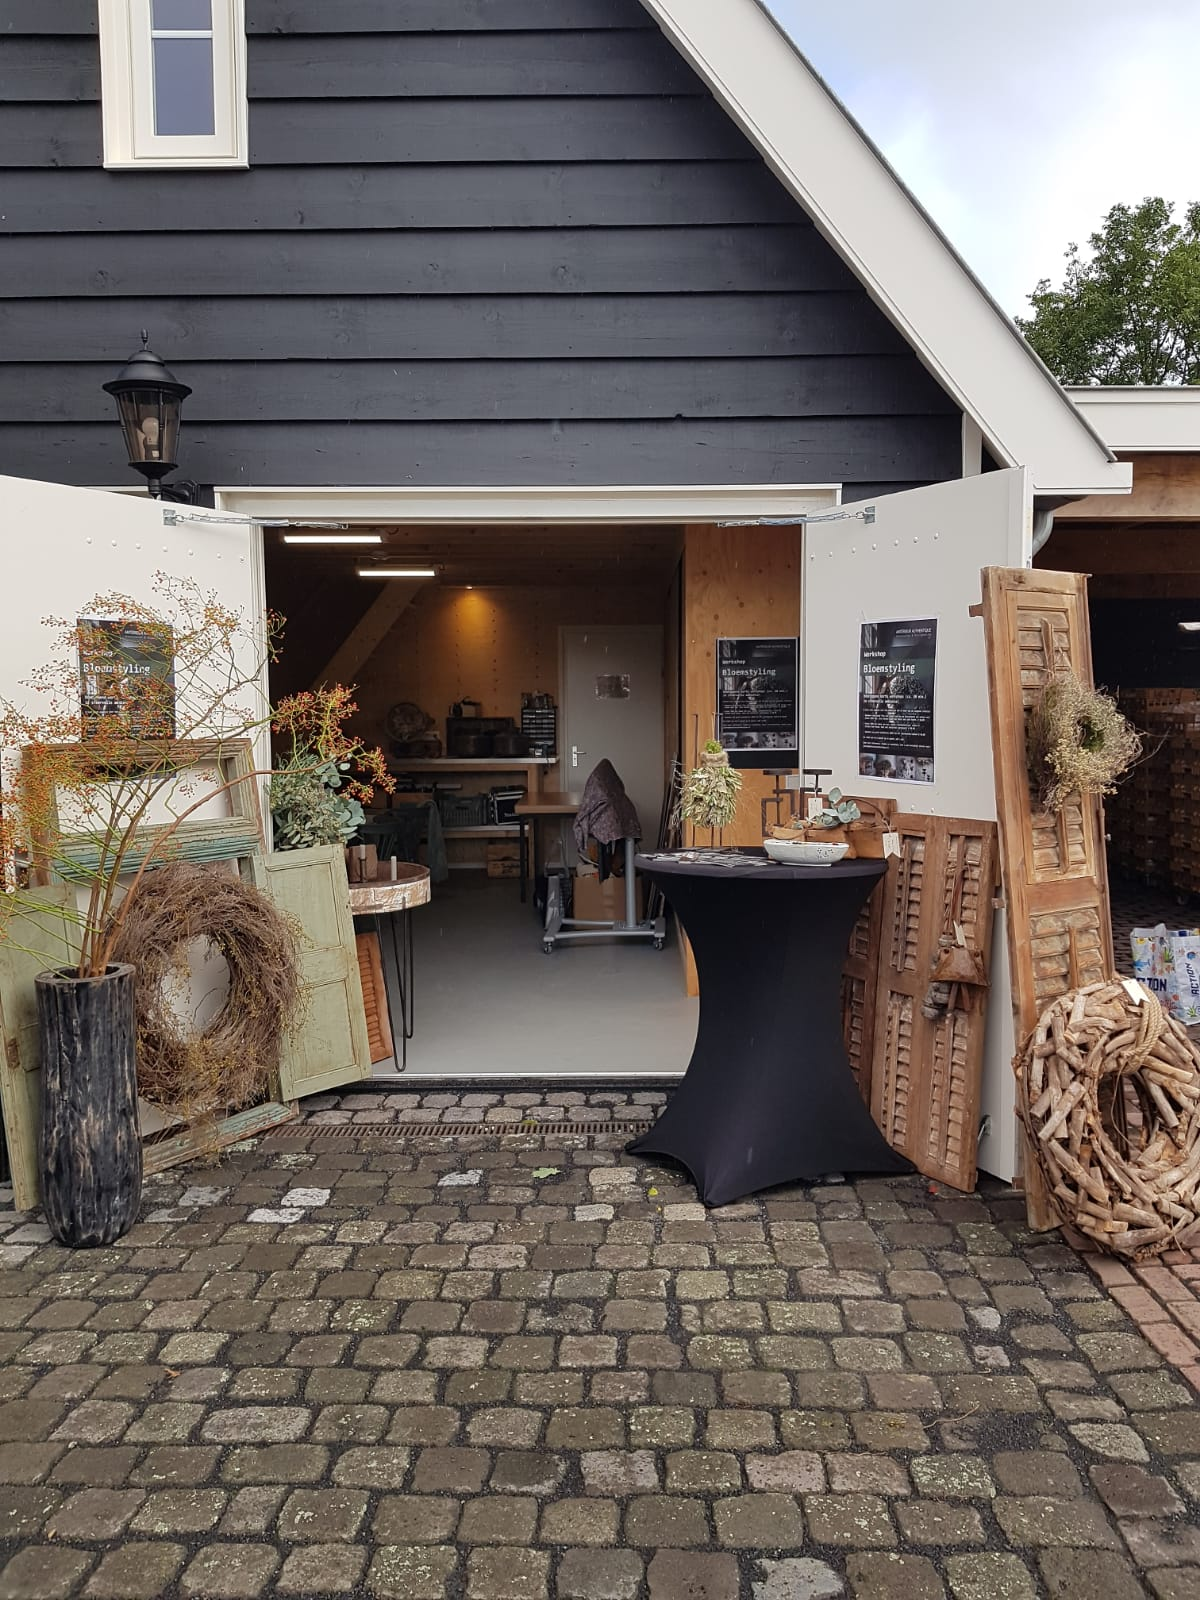 Herfstfair 2019 Kapelle met workshopruimte